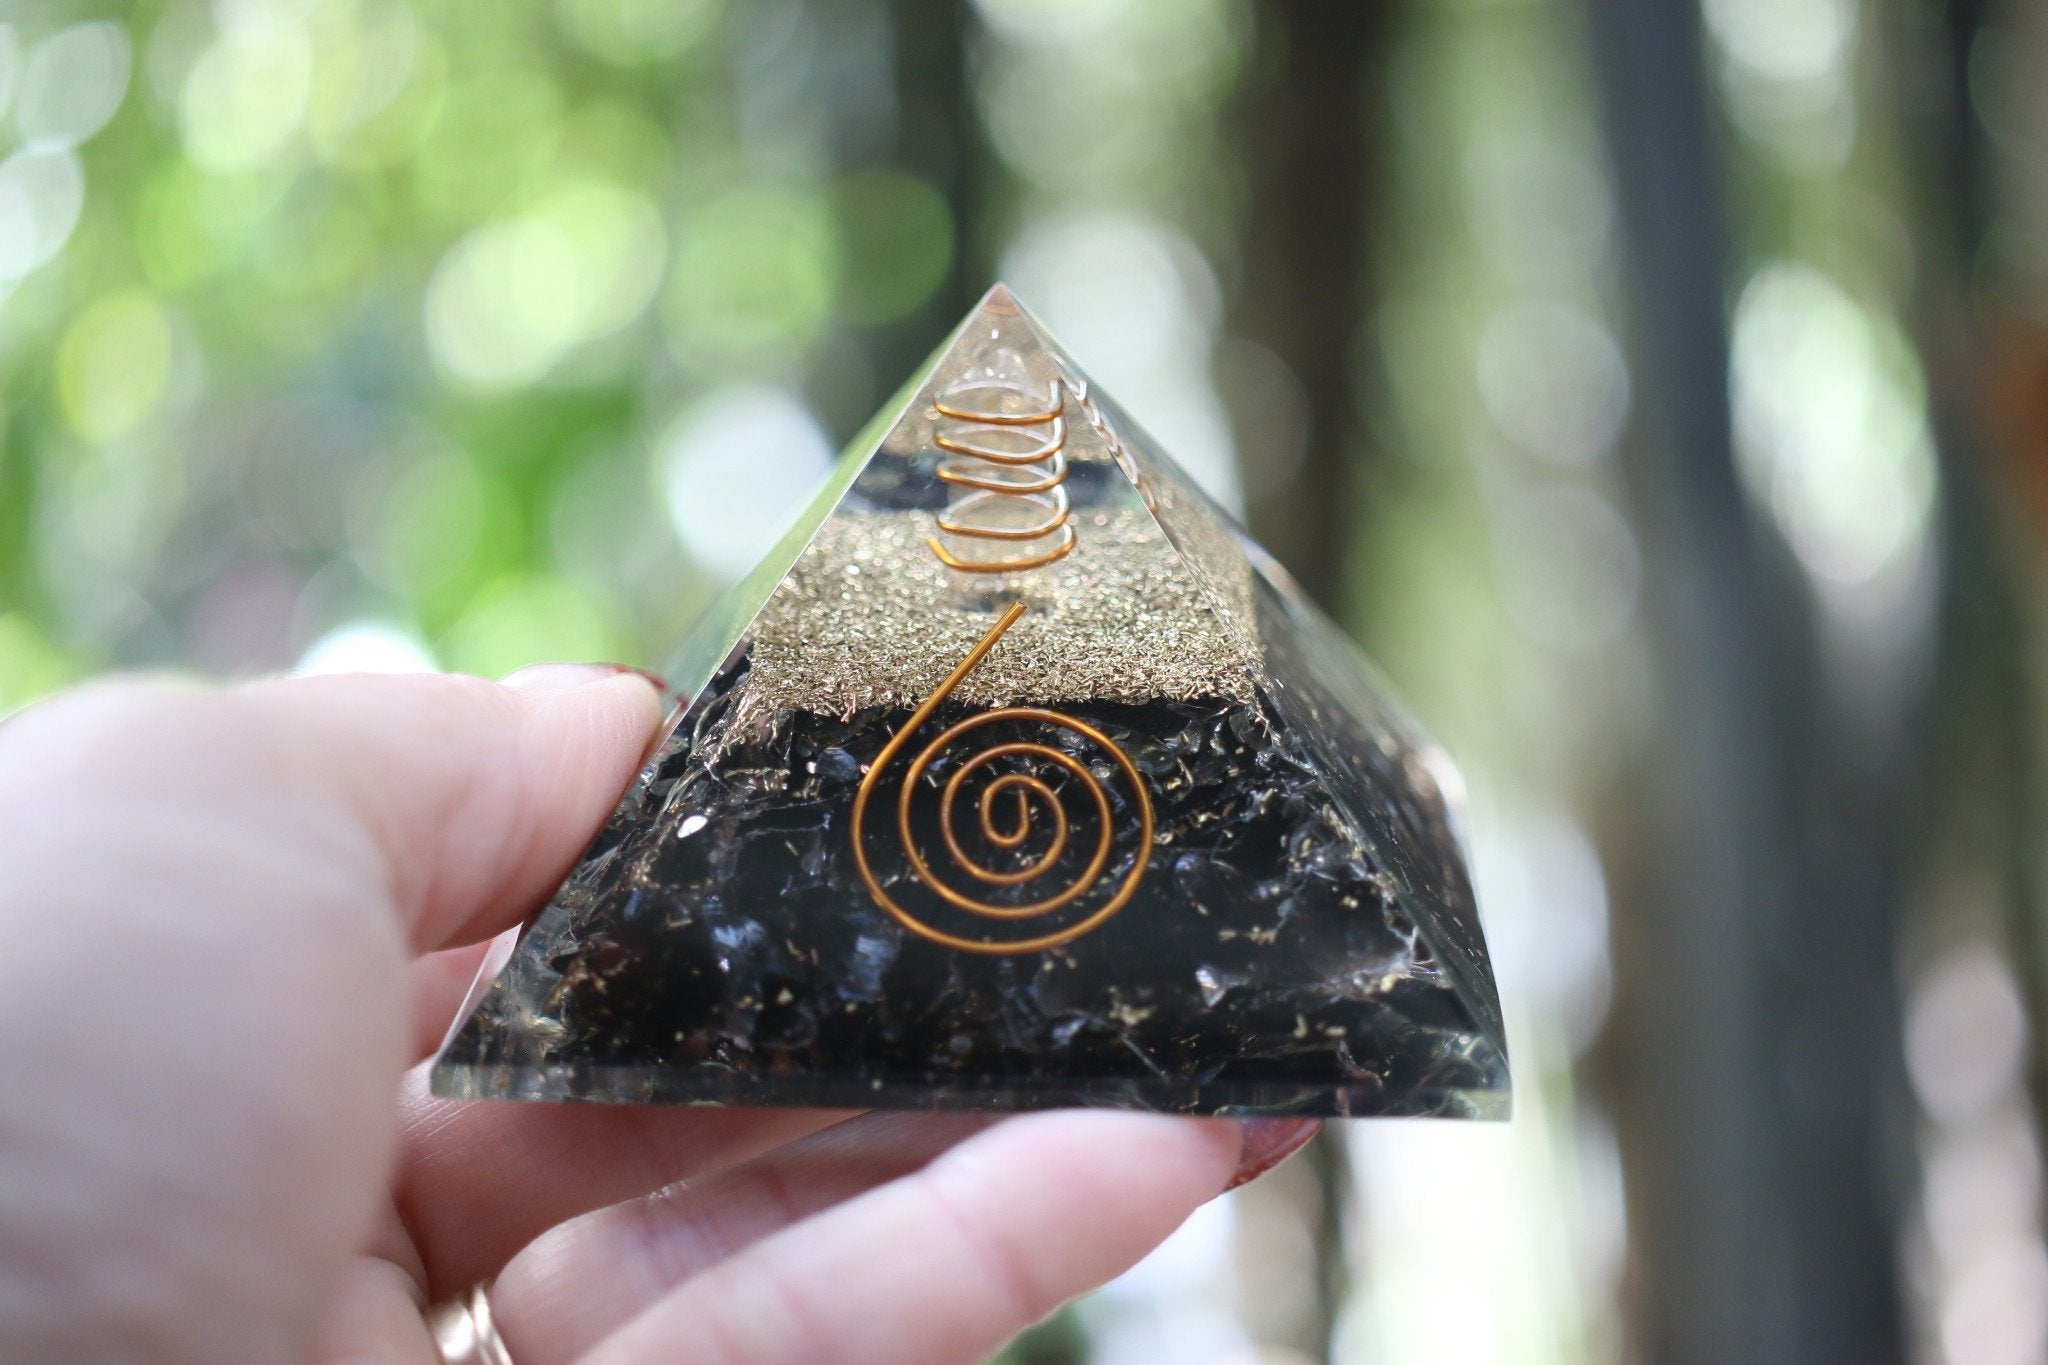 5G Orgonite EMF cellphone protection with MALAQUITE